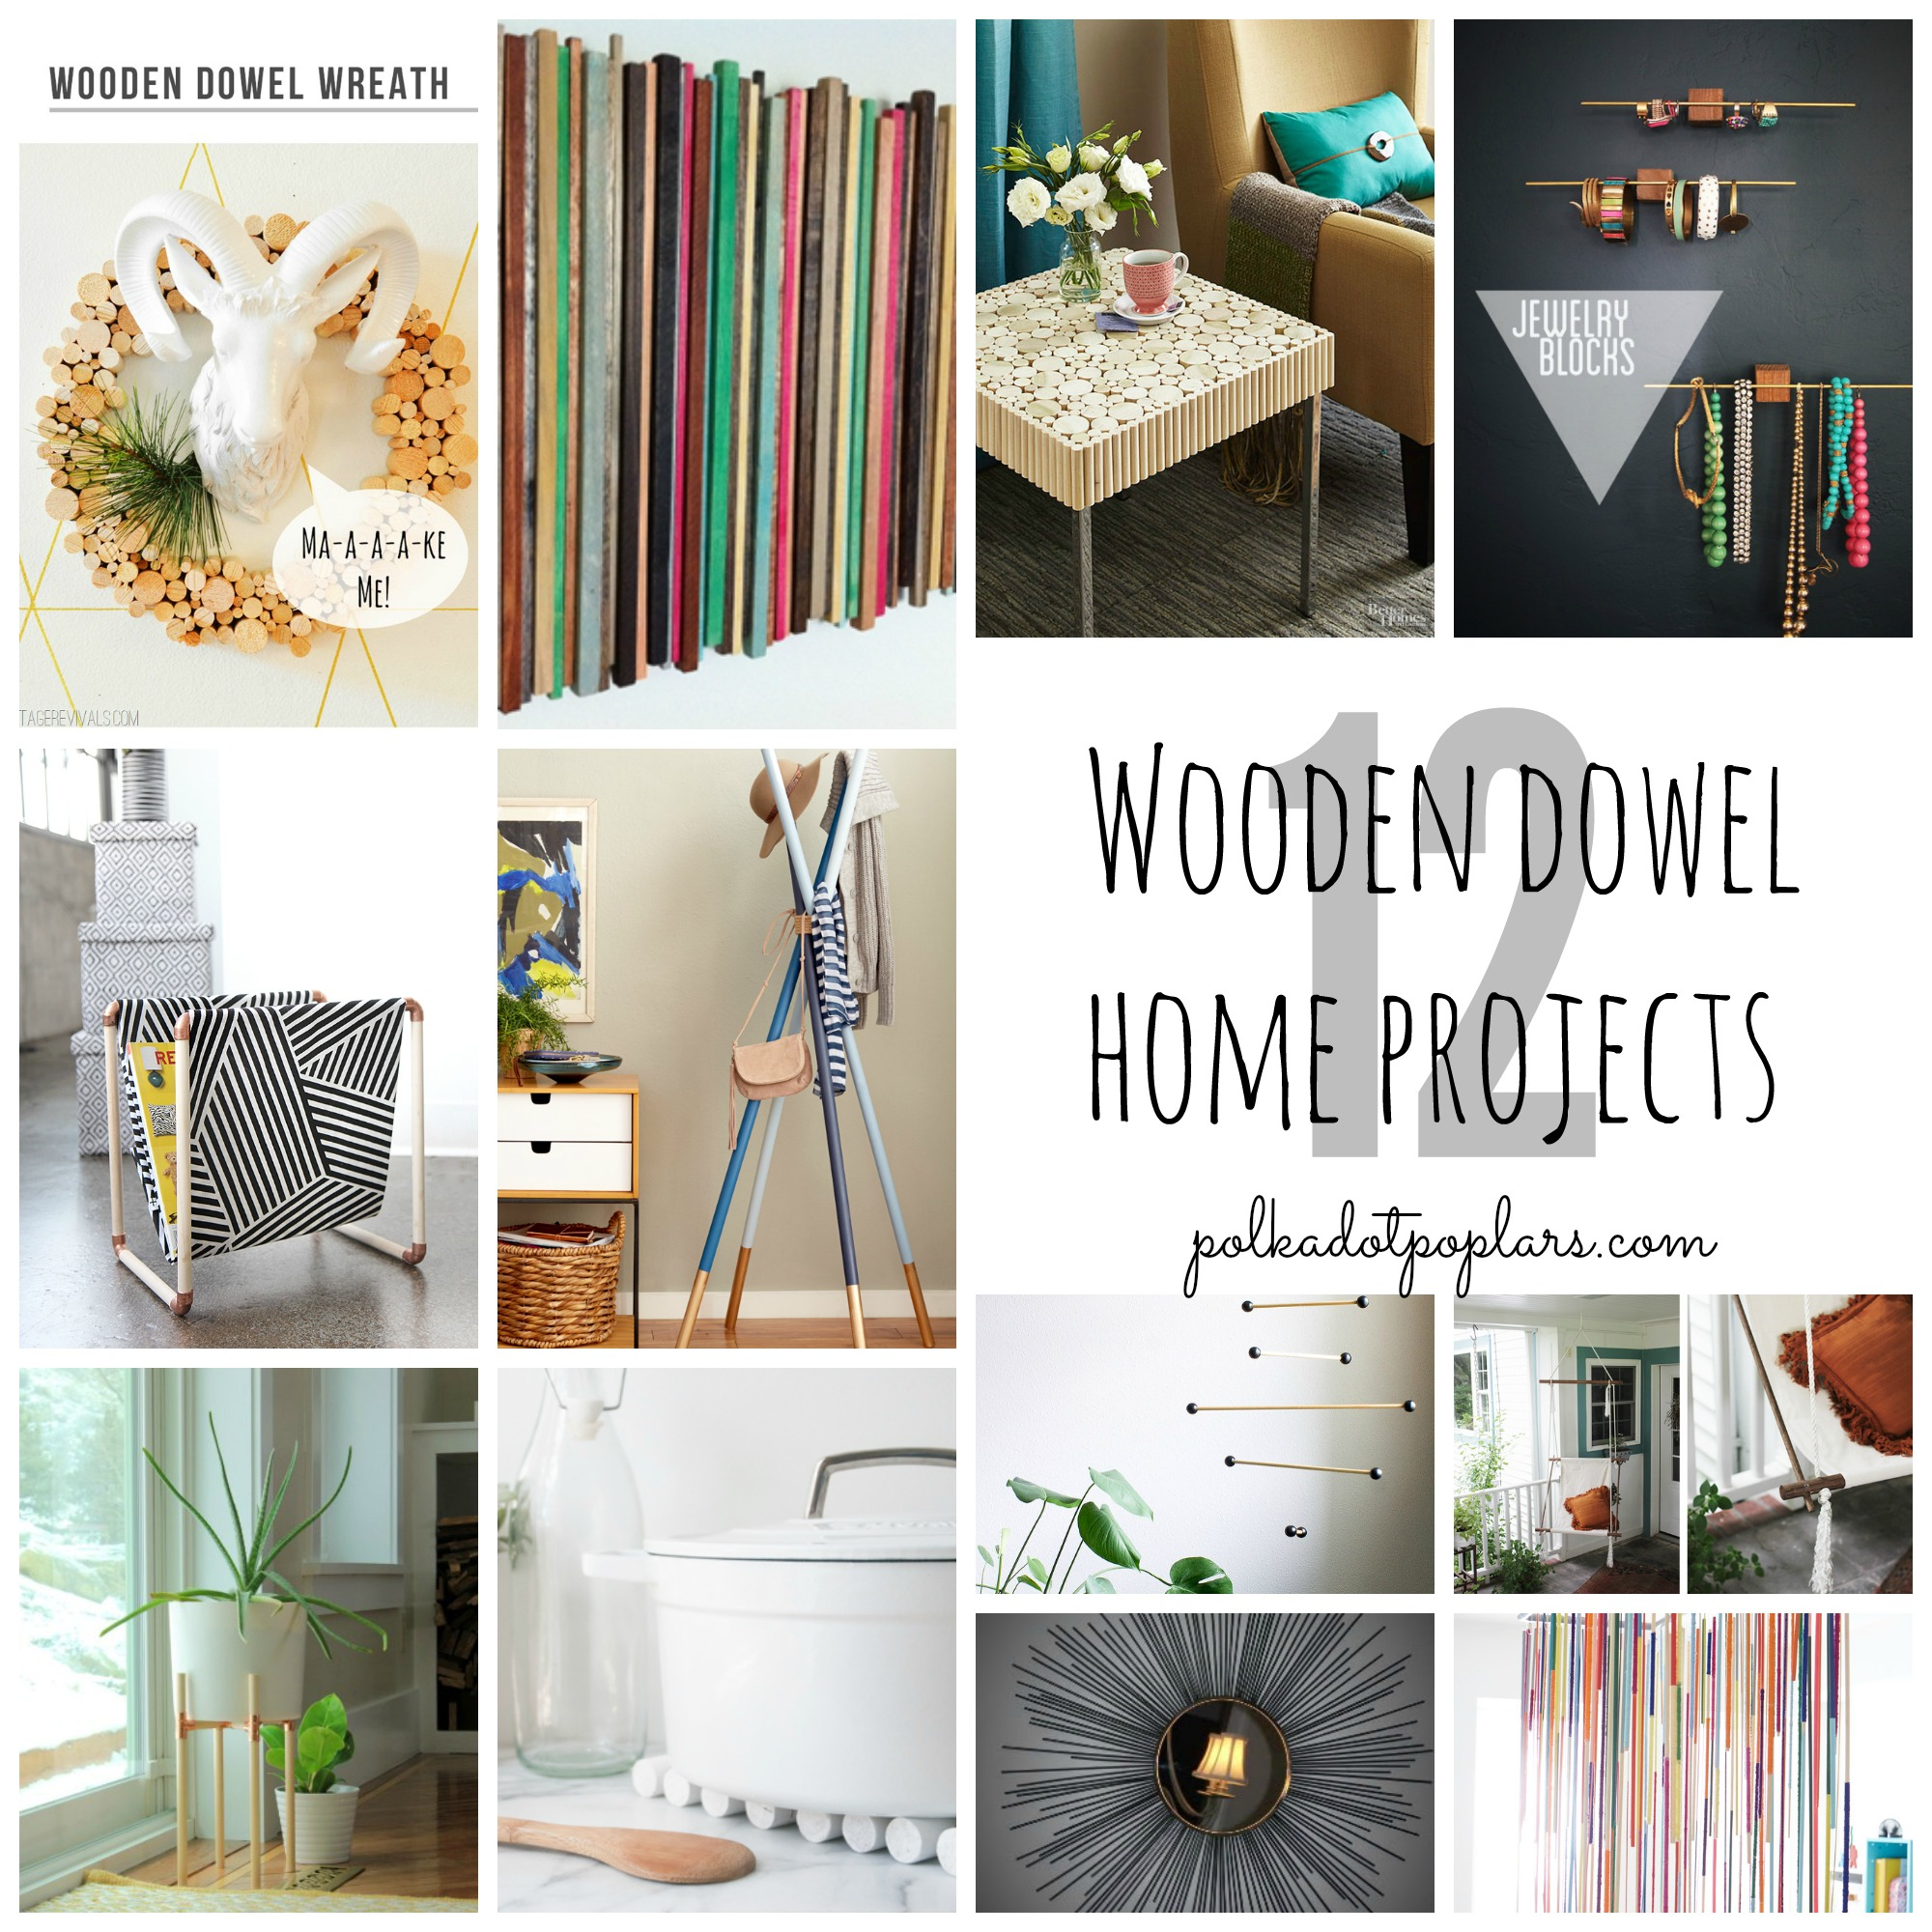 12 Wooden Dowel Home Project Ideas.